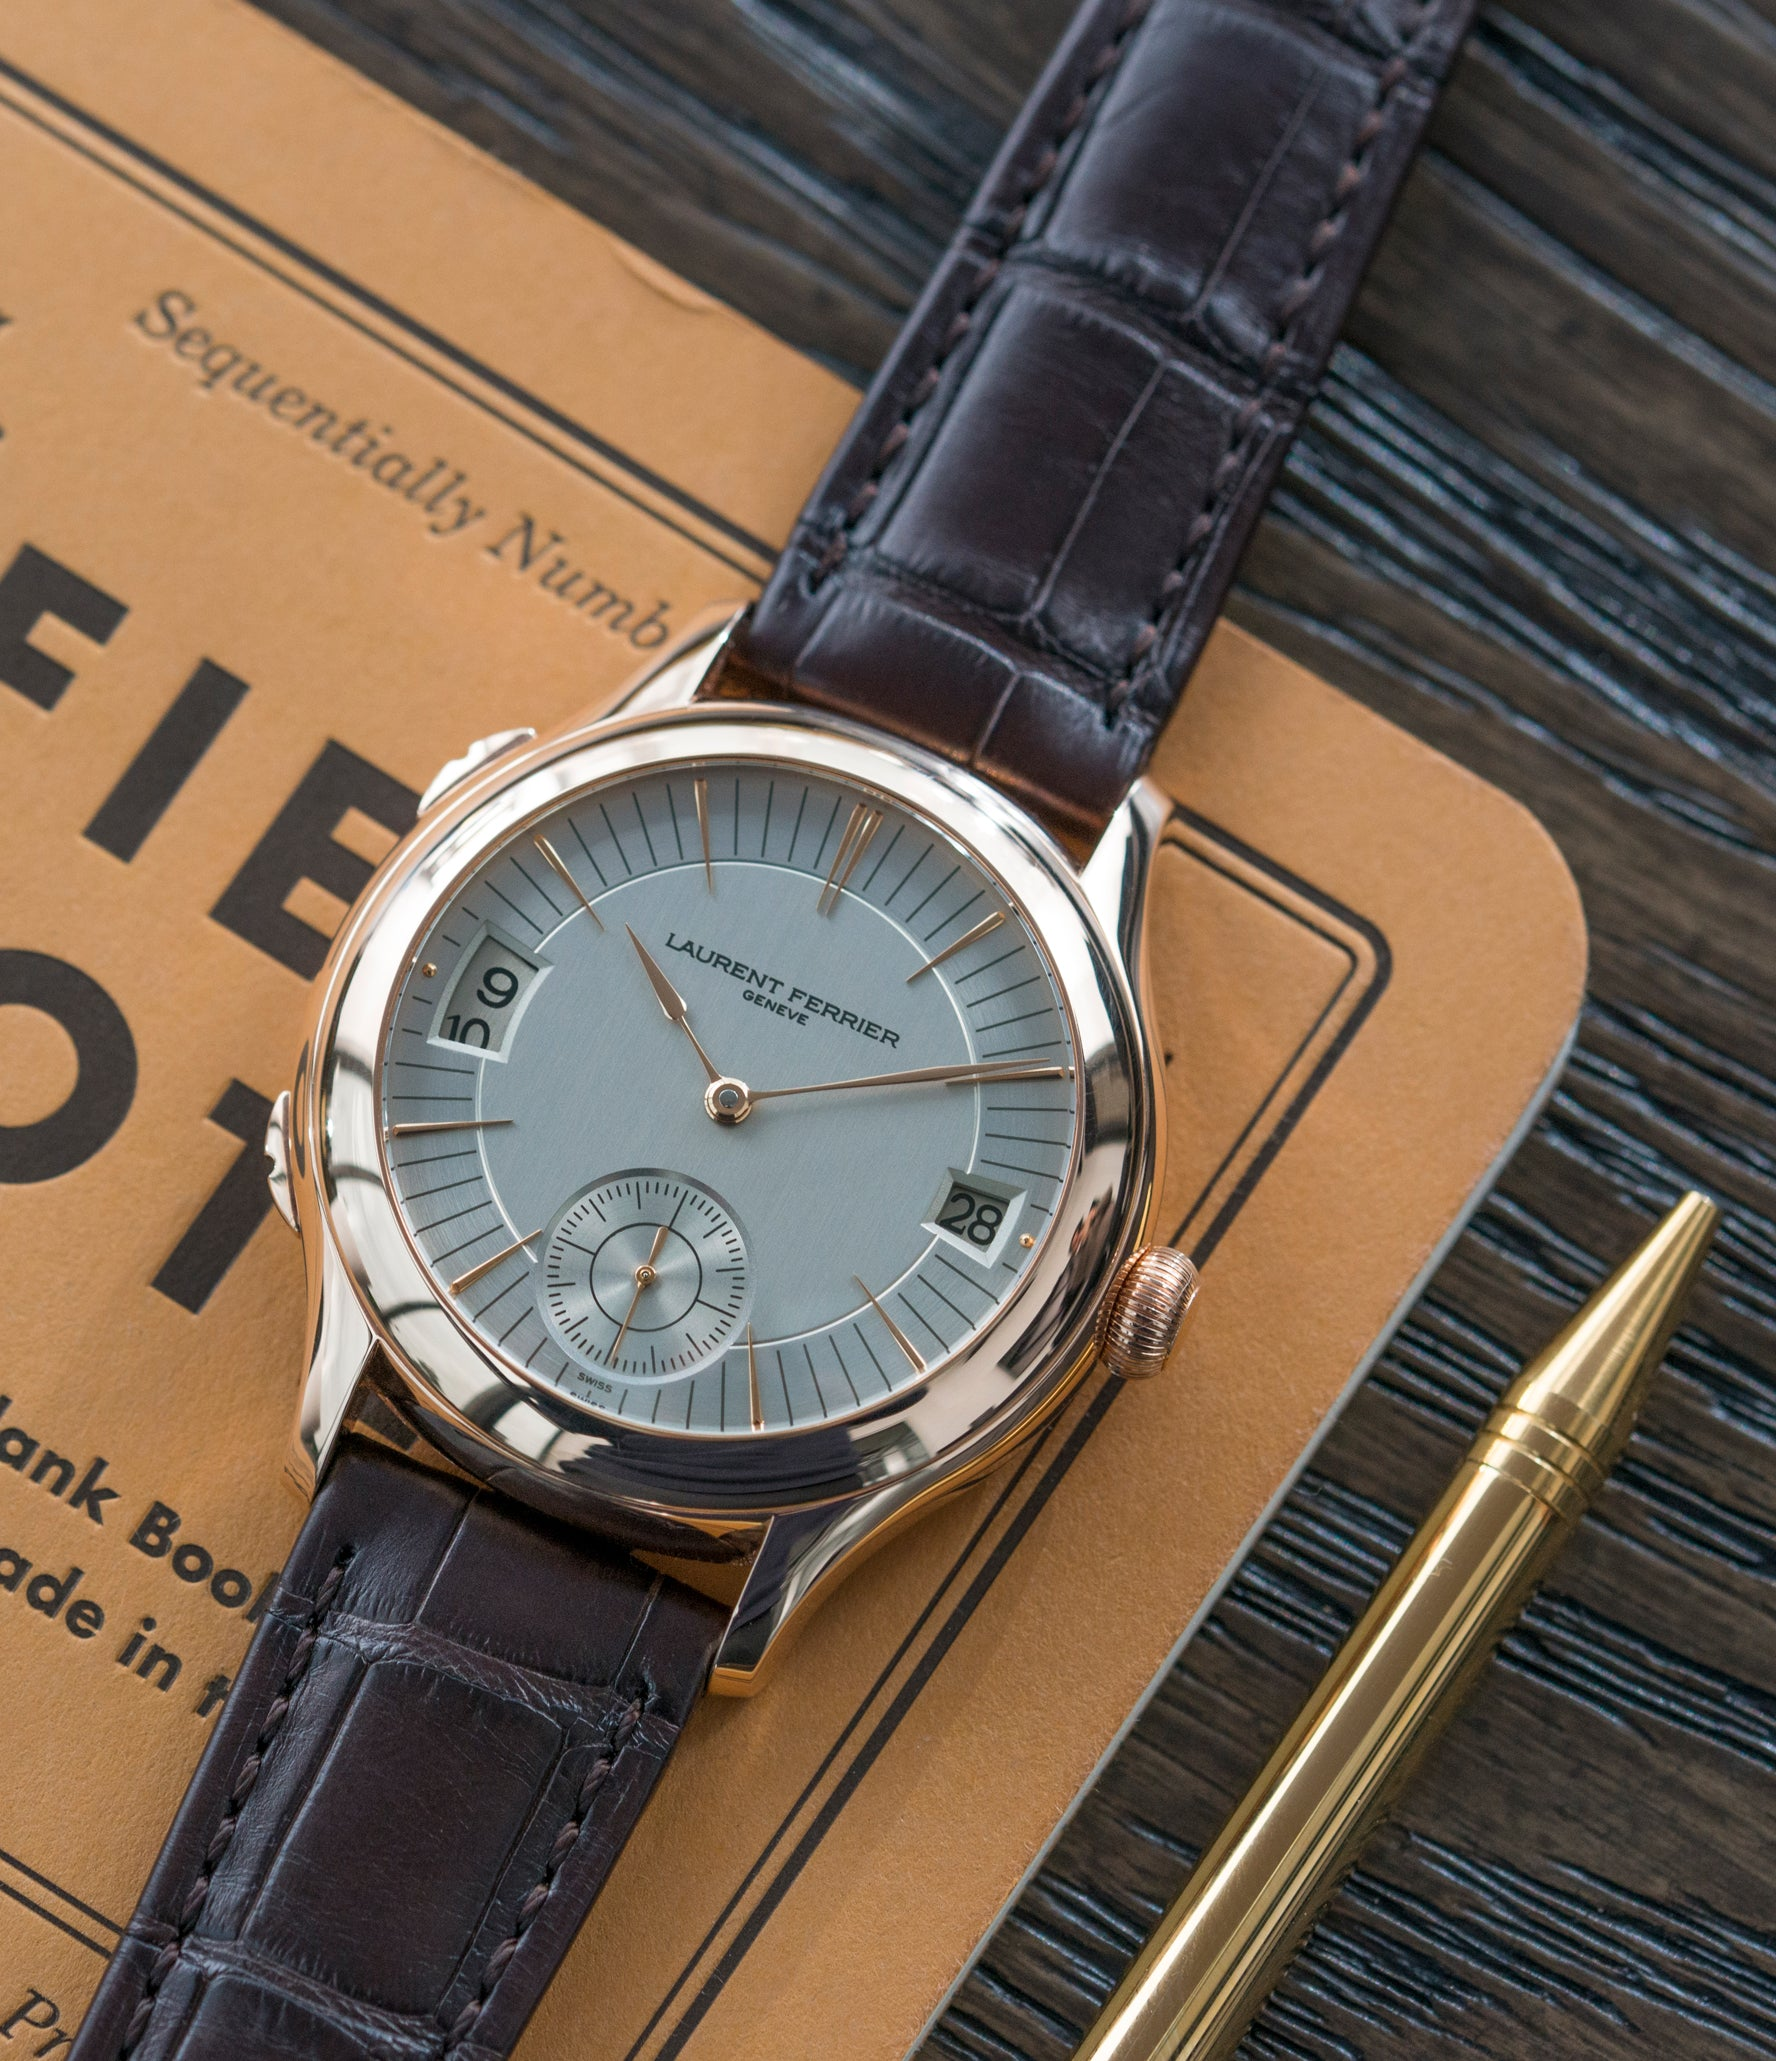 Galet Traveller Laurent Ferrier Micro Rotor LF 230.01 rose gold watch additional prototype dial for sale online at A Collected Man London UK approved reseller of preowned independent watchmakers